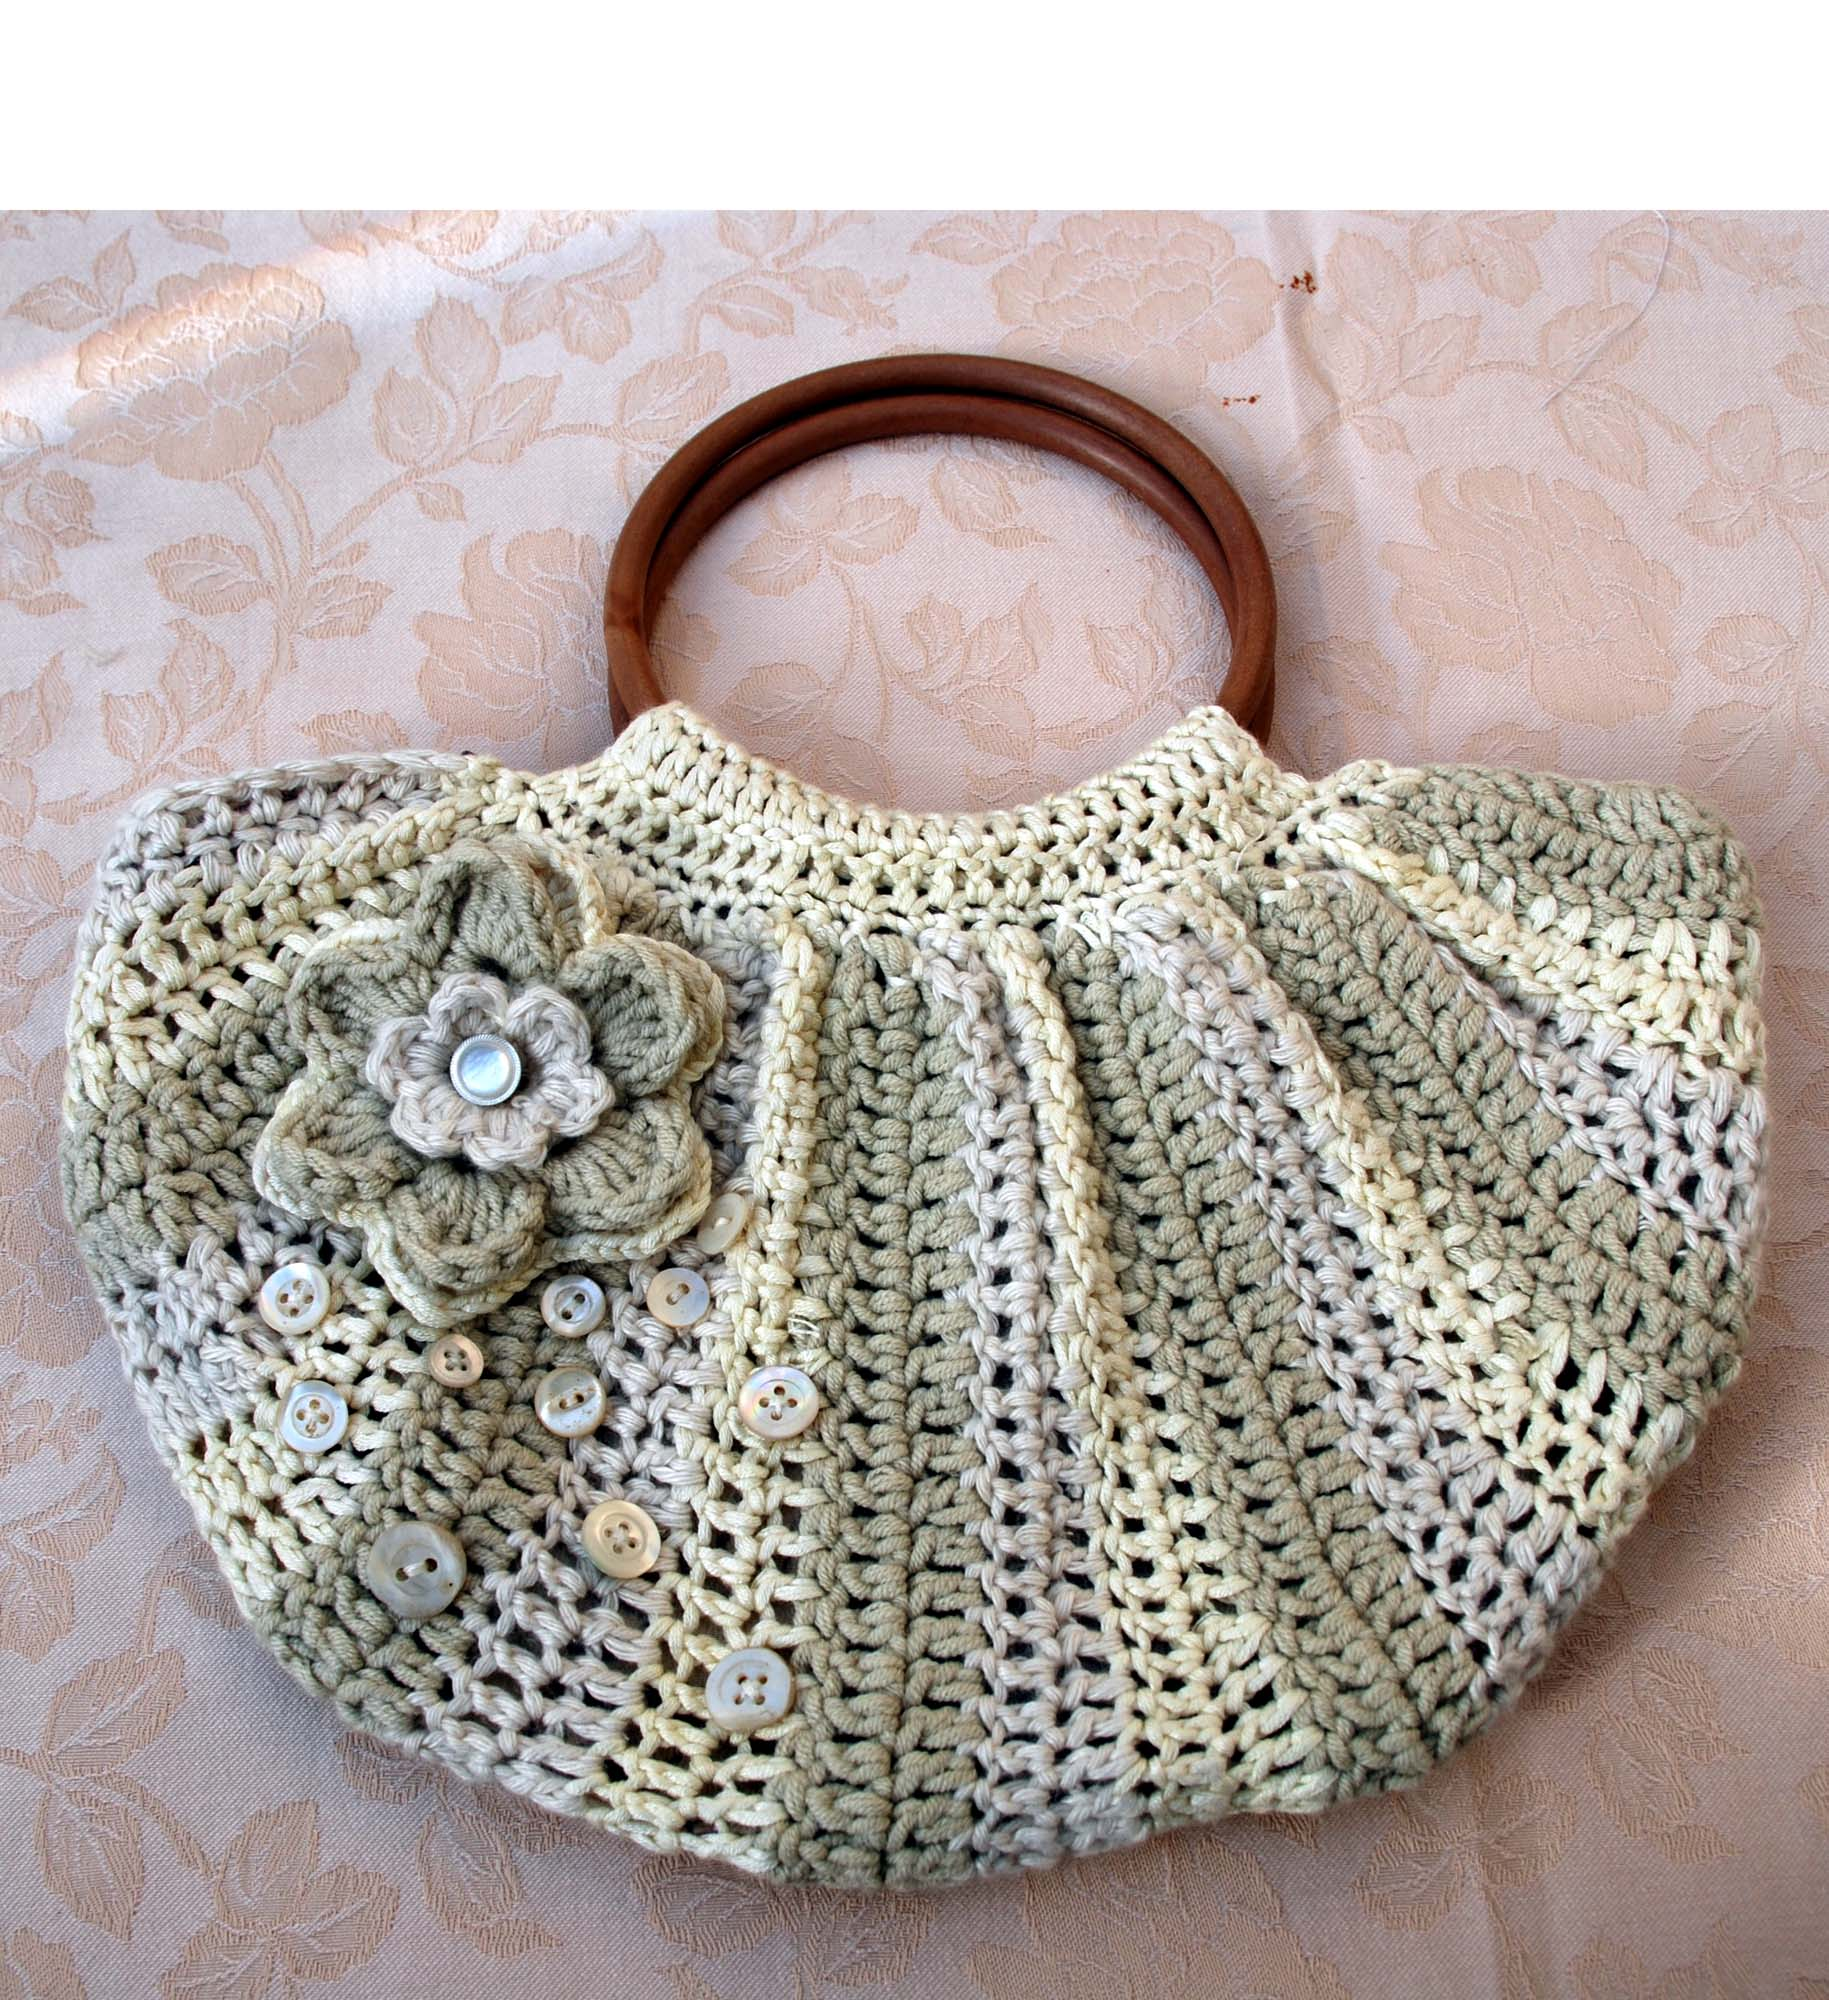 Crocheted Handbag : Pretty crochet bag with silk and pearl buttons